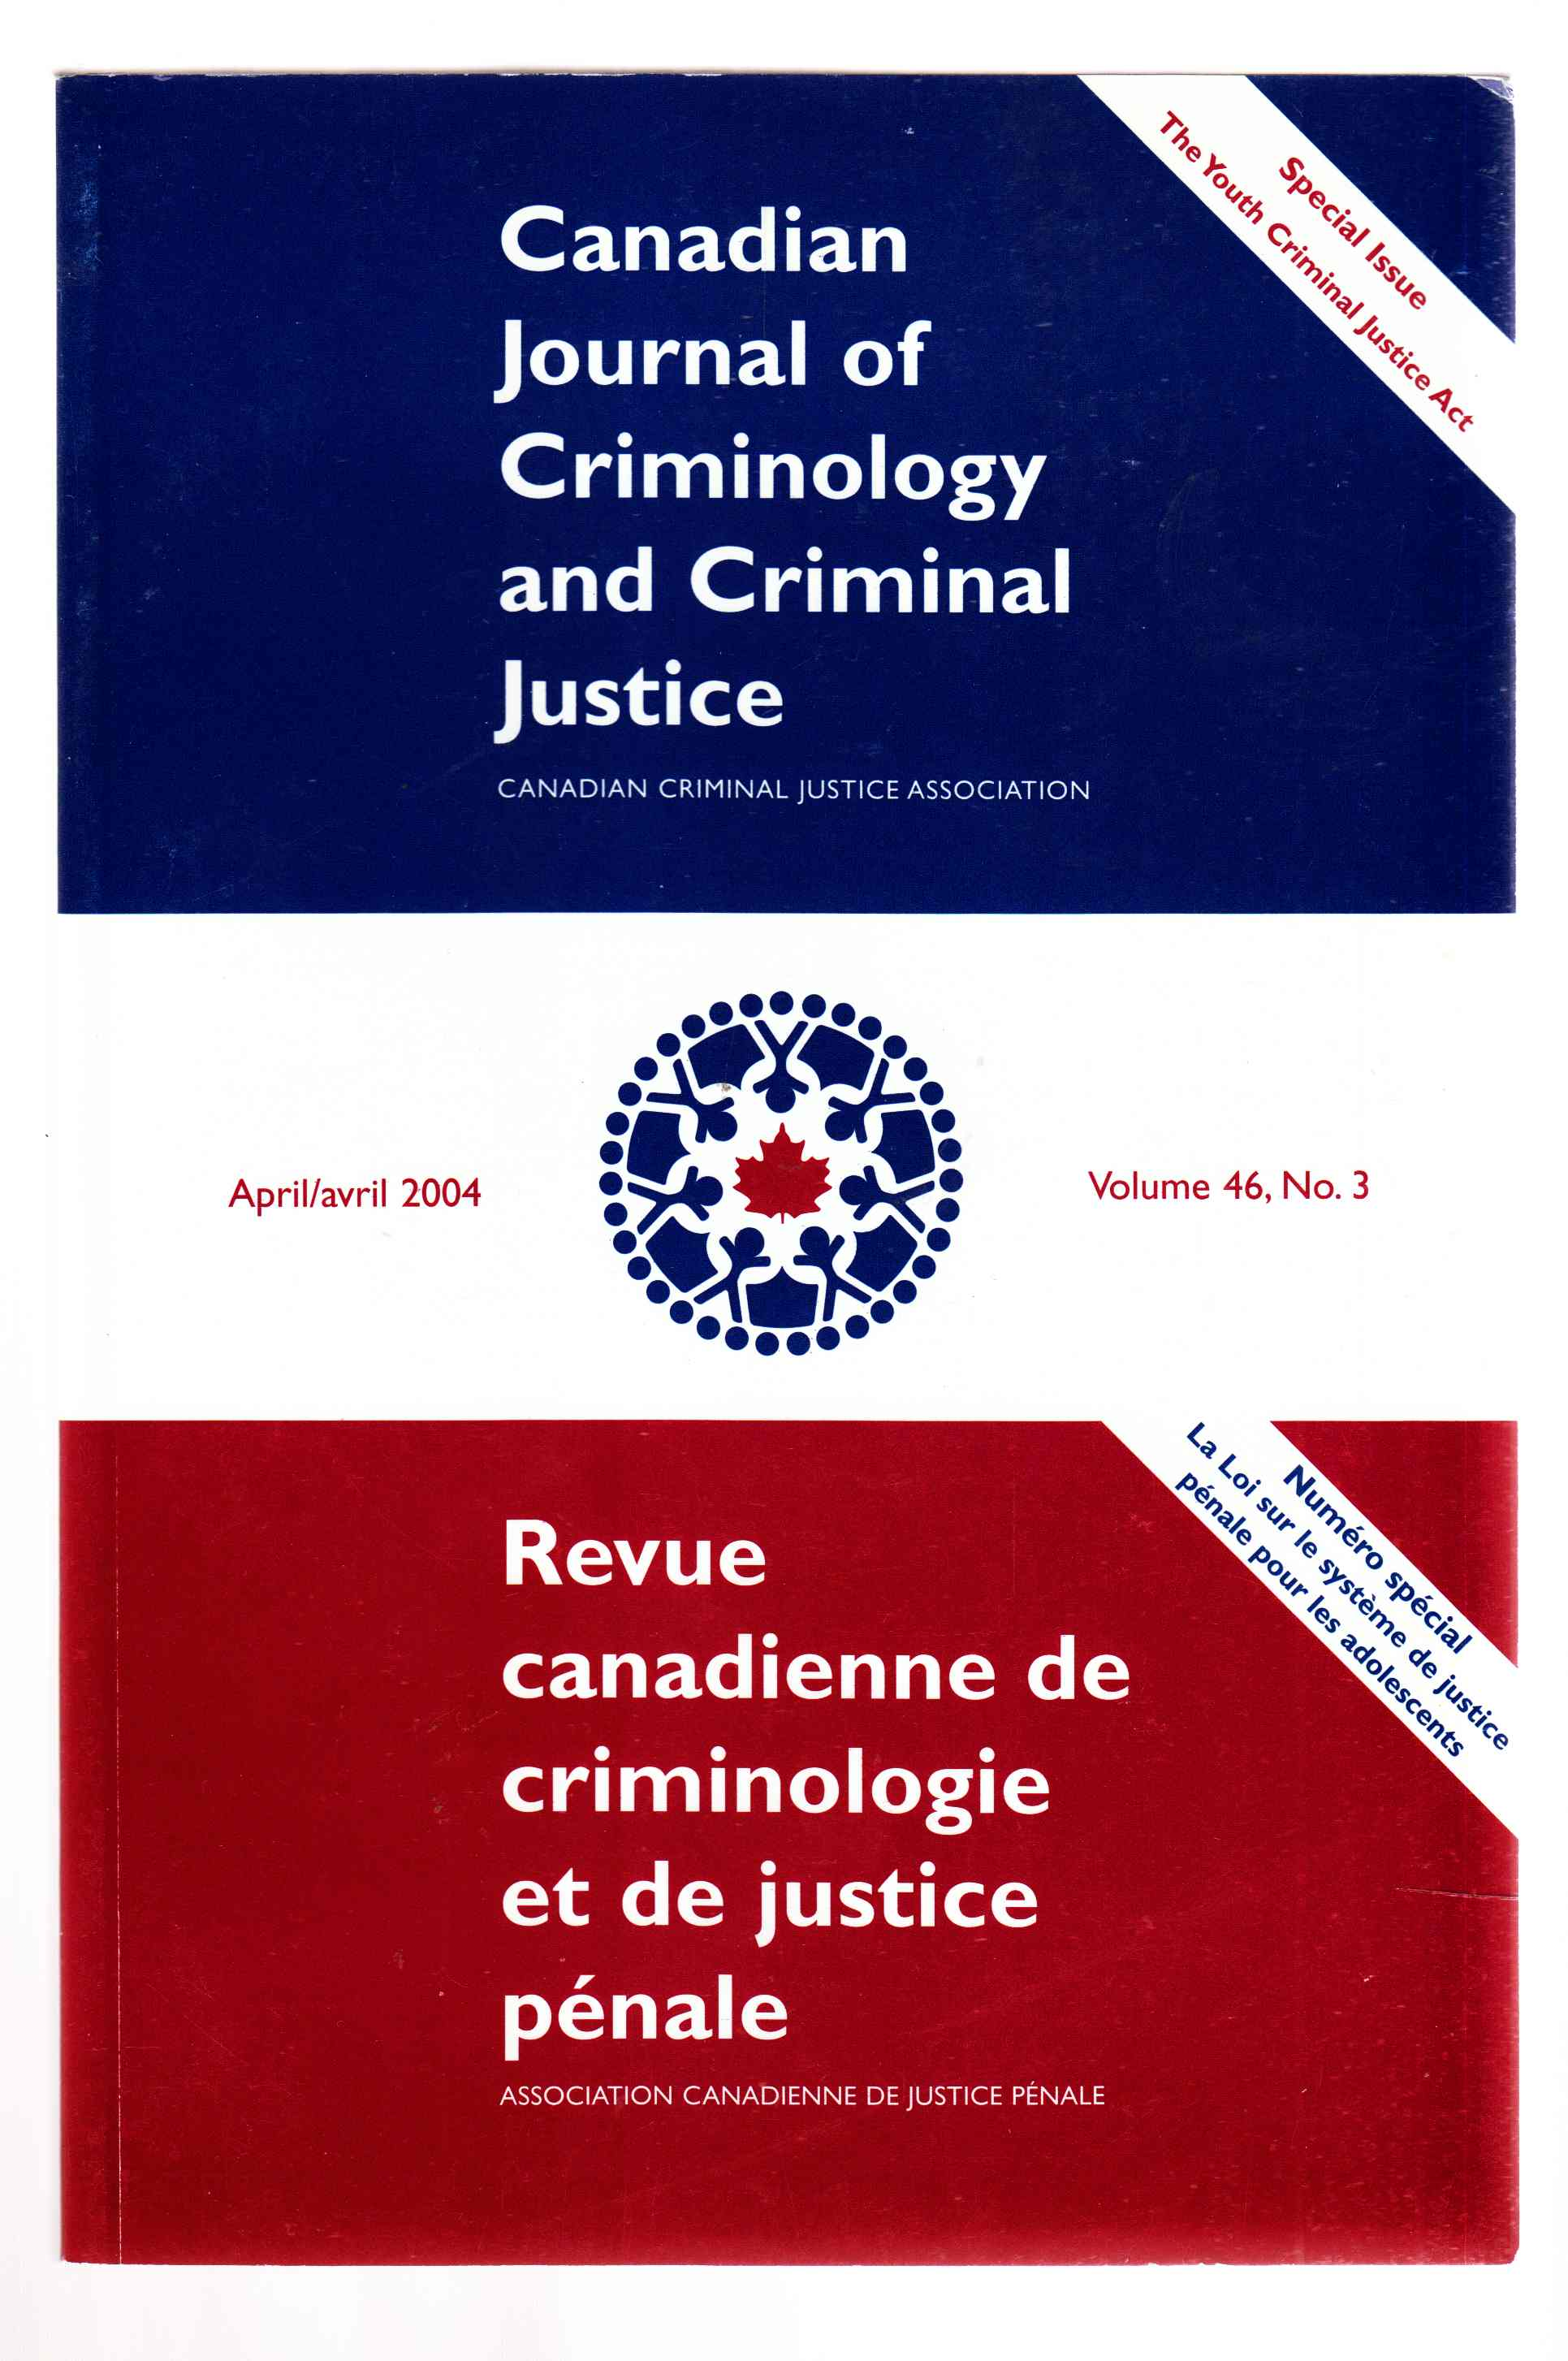 Image for Canadian Journal of Criminology and Criminal Justice April 2004 Volume 46, No. 3